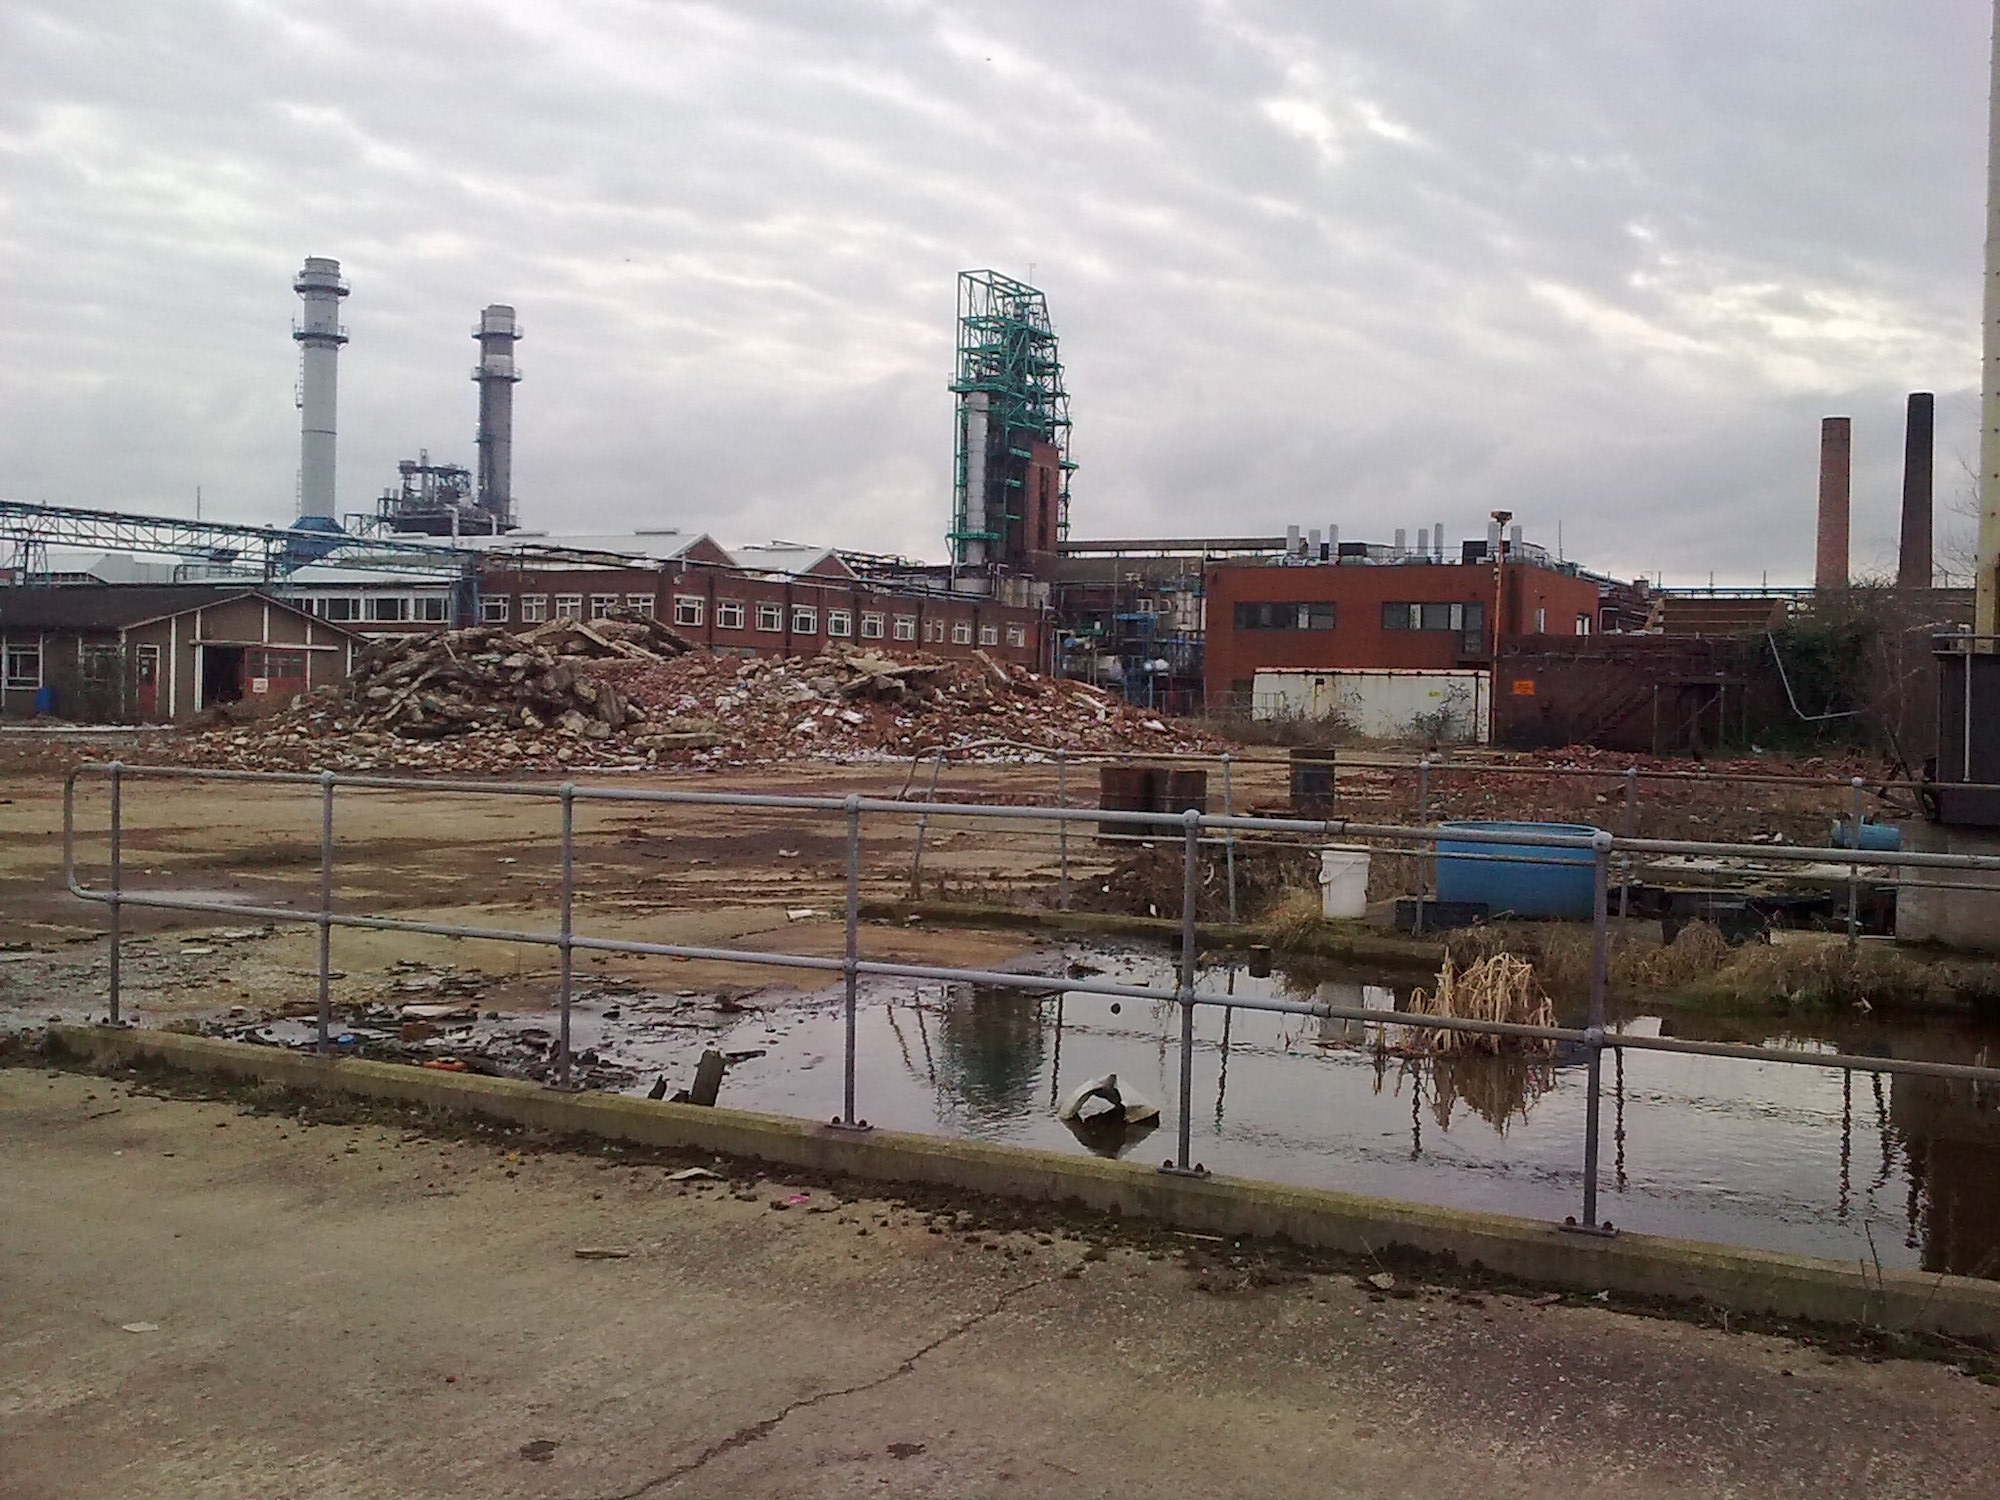 Brownfield sites are locations where remnants of toxic chemicals and industrial waste prevent the area from being used. (Engineering at Cambridge/Creative Commons)